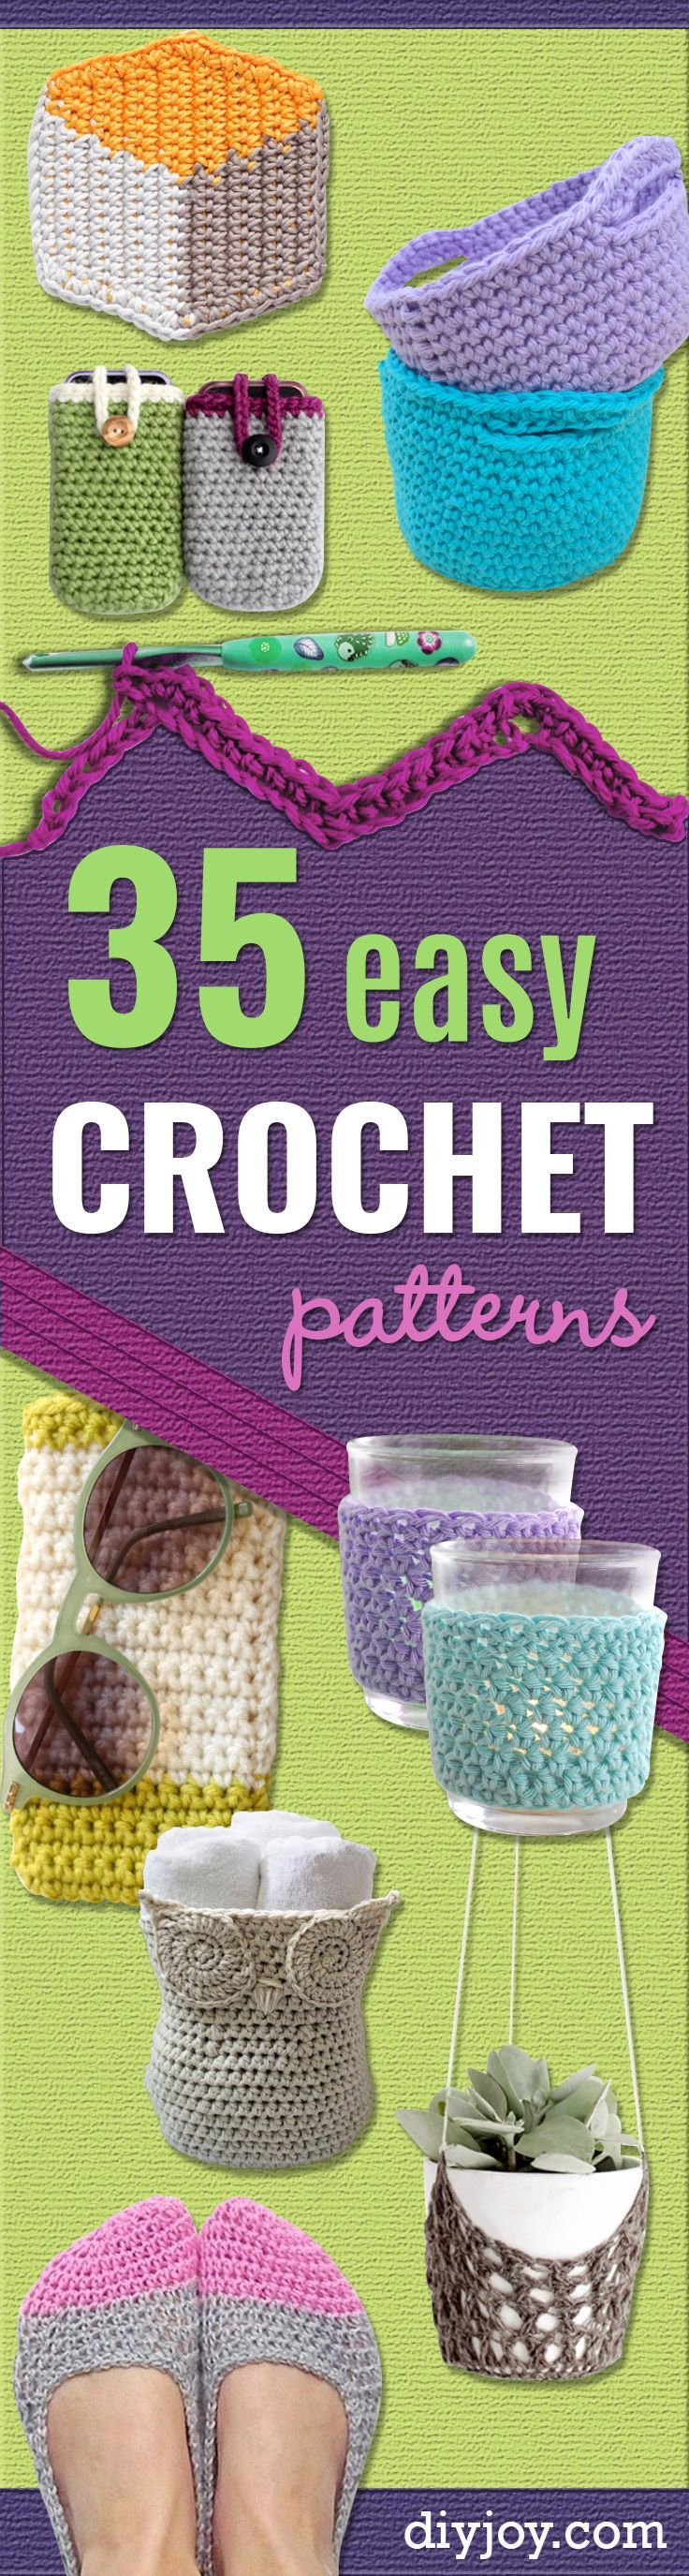 35 Easy Crochet Patterns – Creative Step by Step Crocheted Crafts Make Cool DIY …